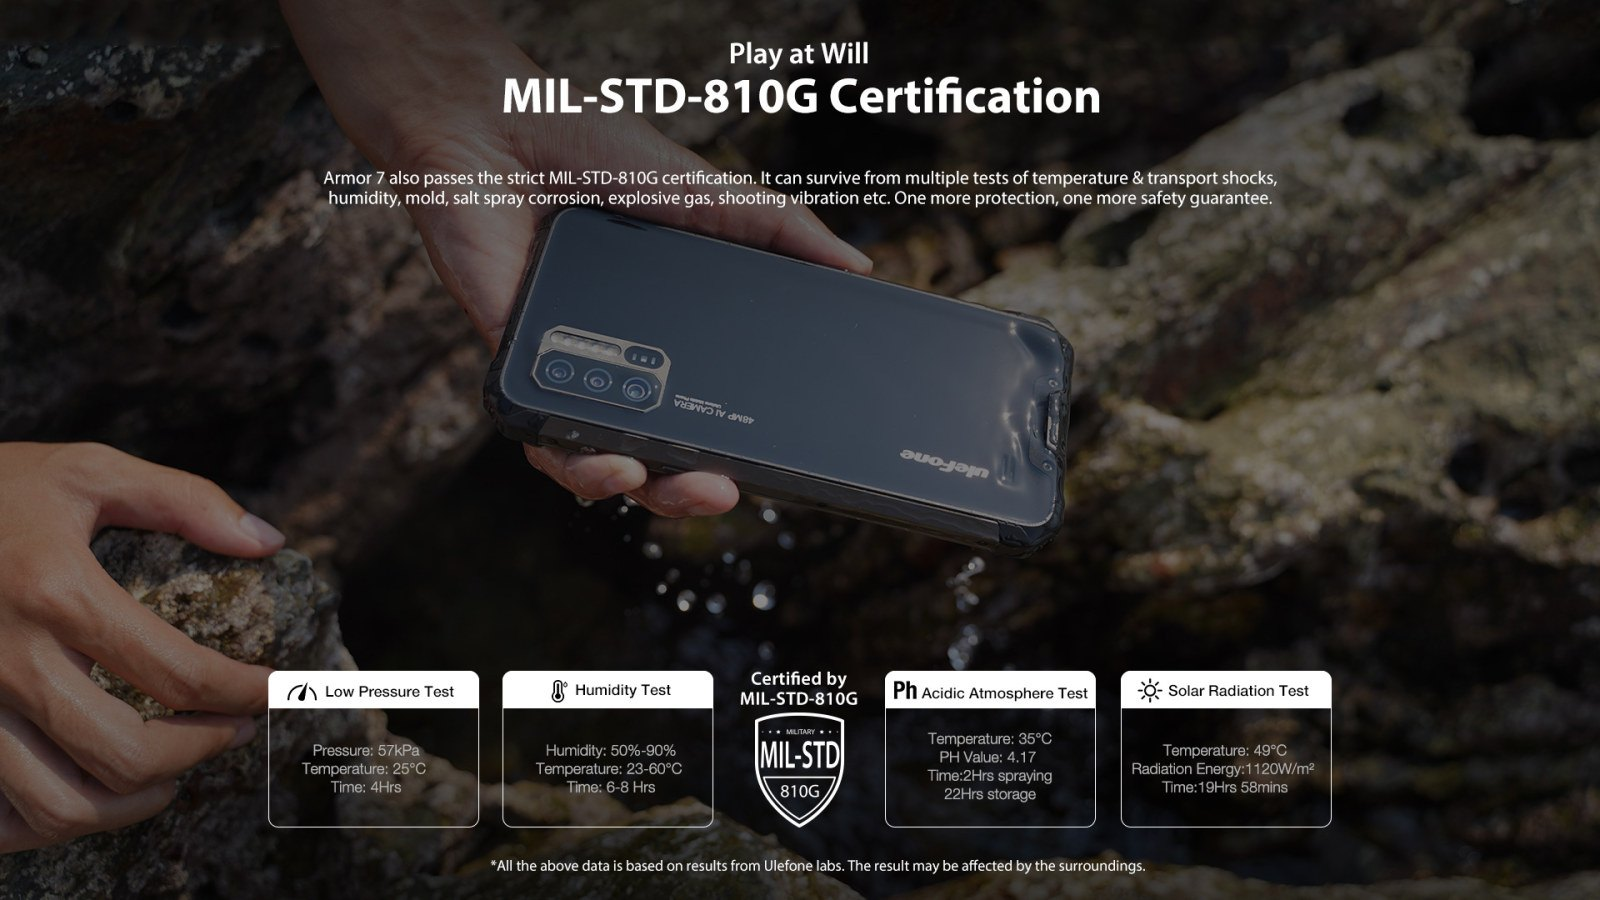 MIL-STD-810G military grade certification